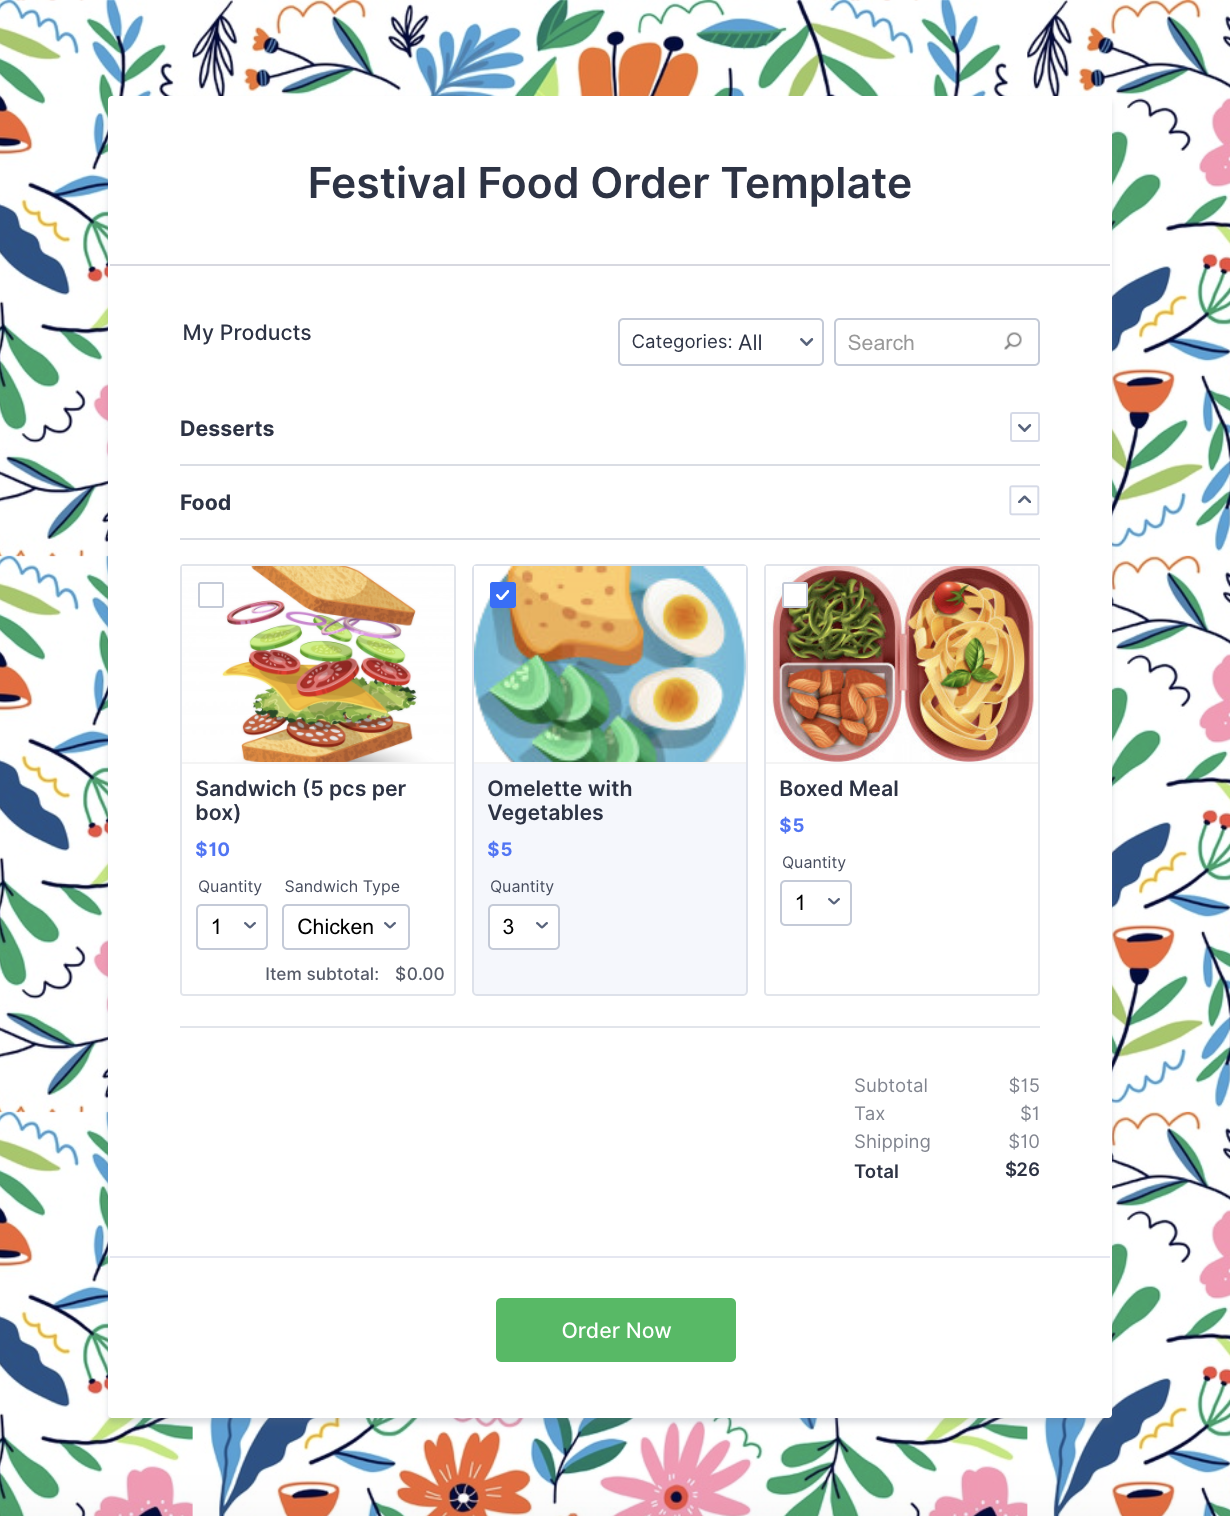 Product order form with paypal payment integration